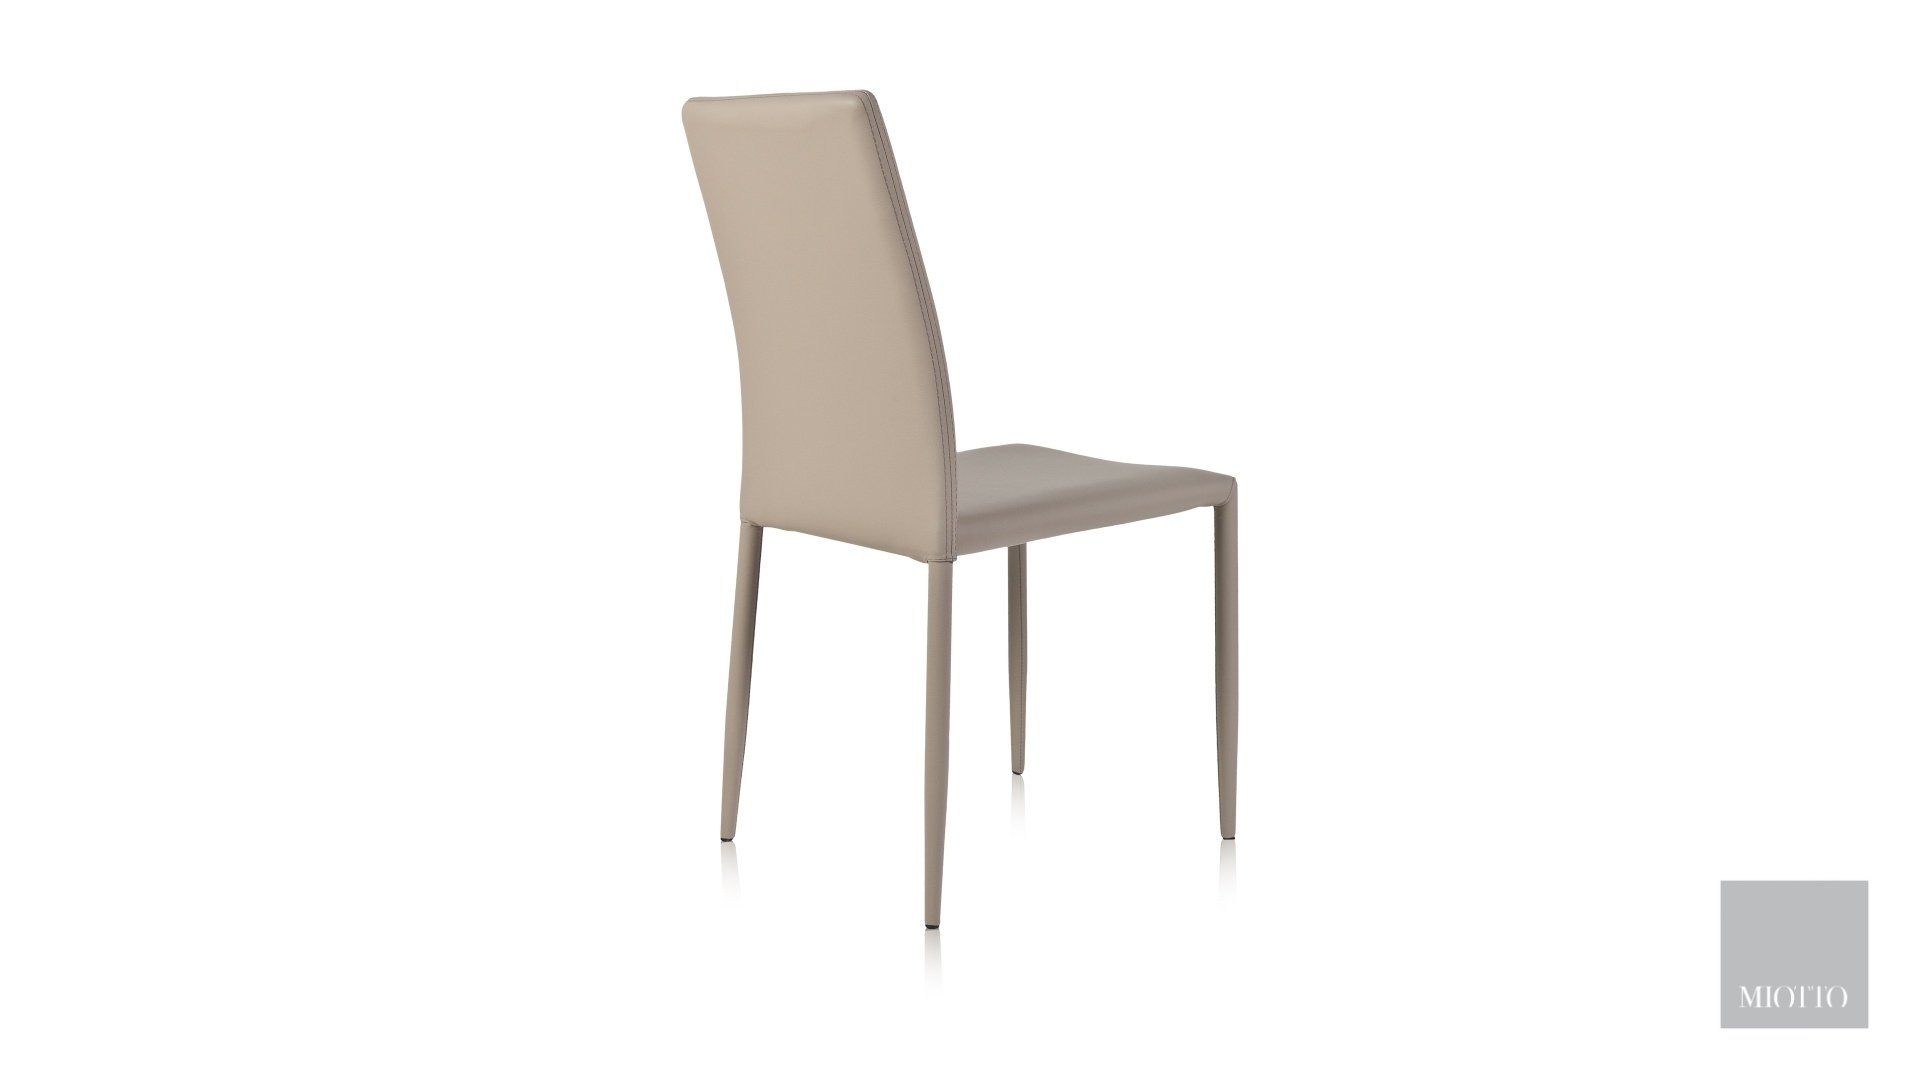 miotto_Lara dining chair pu taupe back miotto furniture